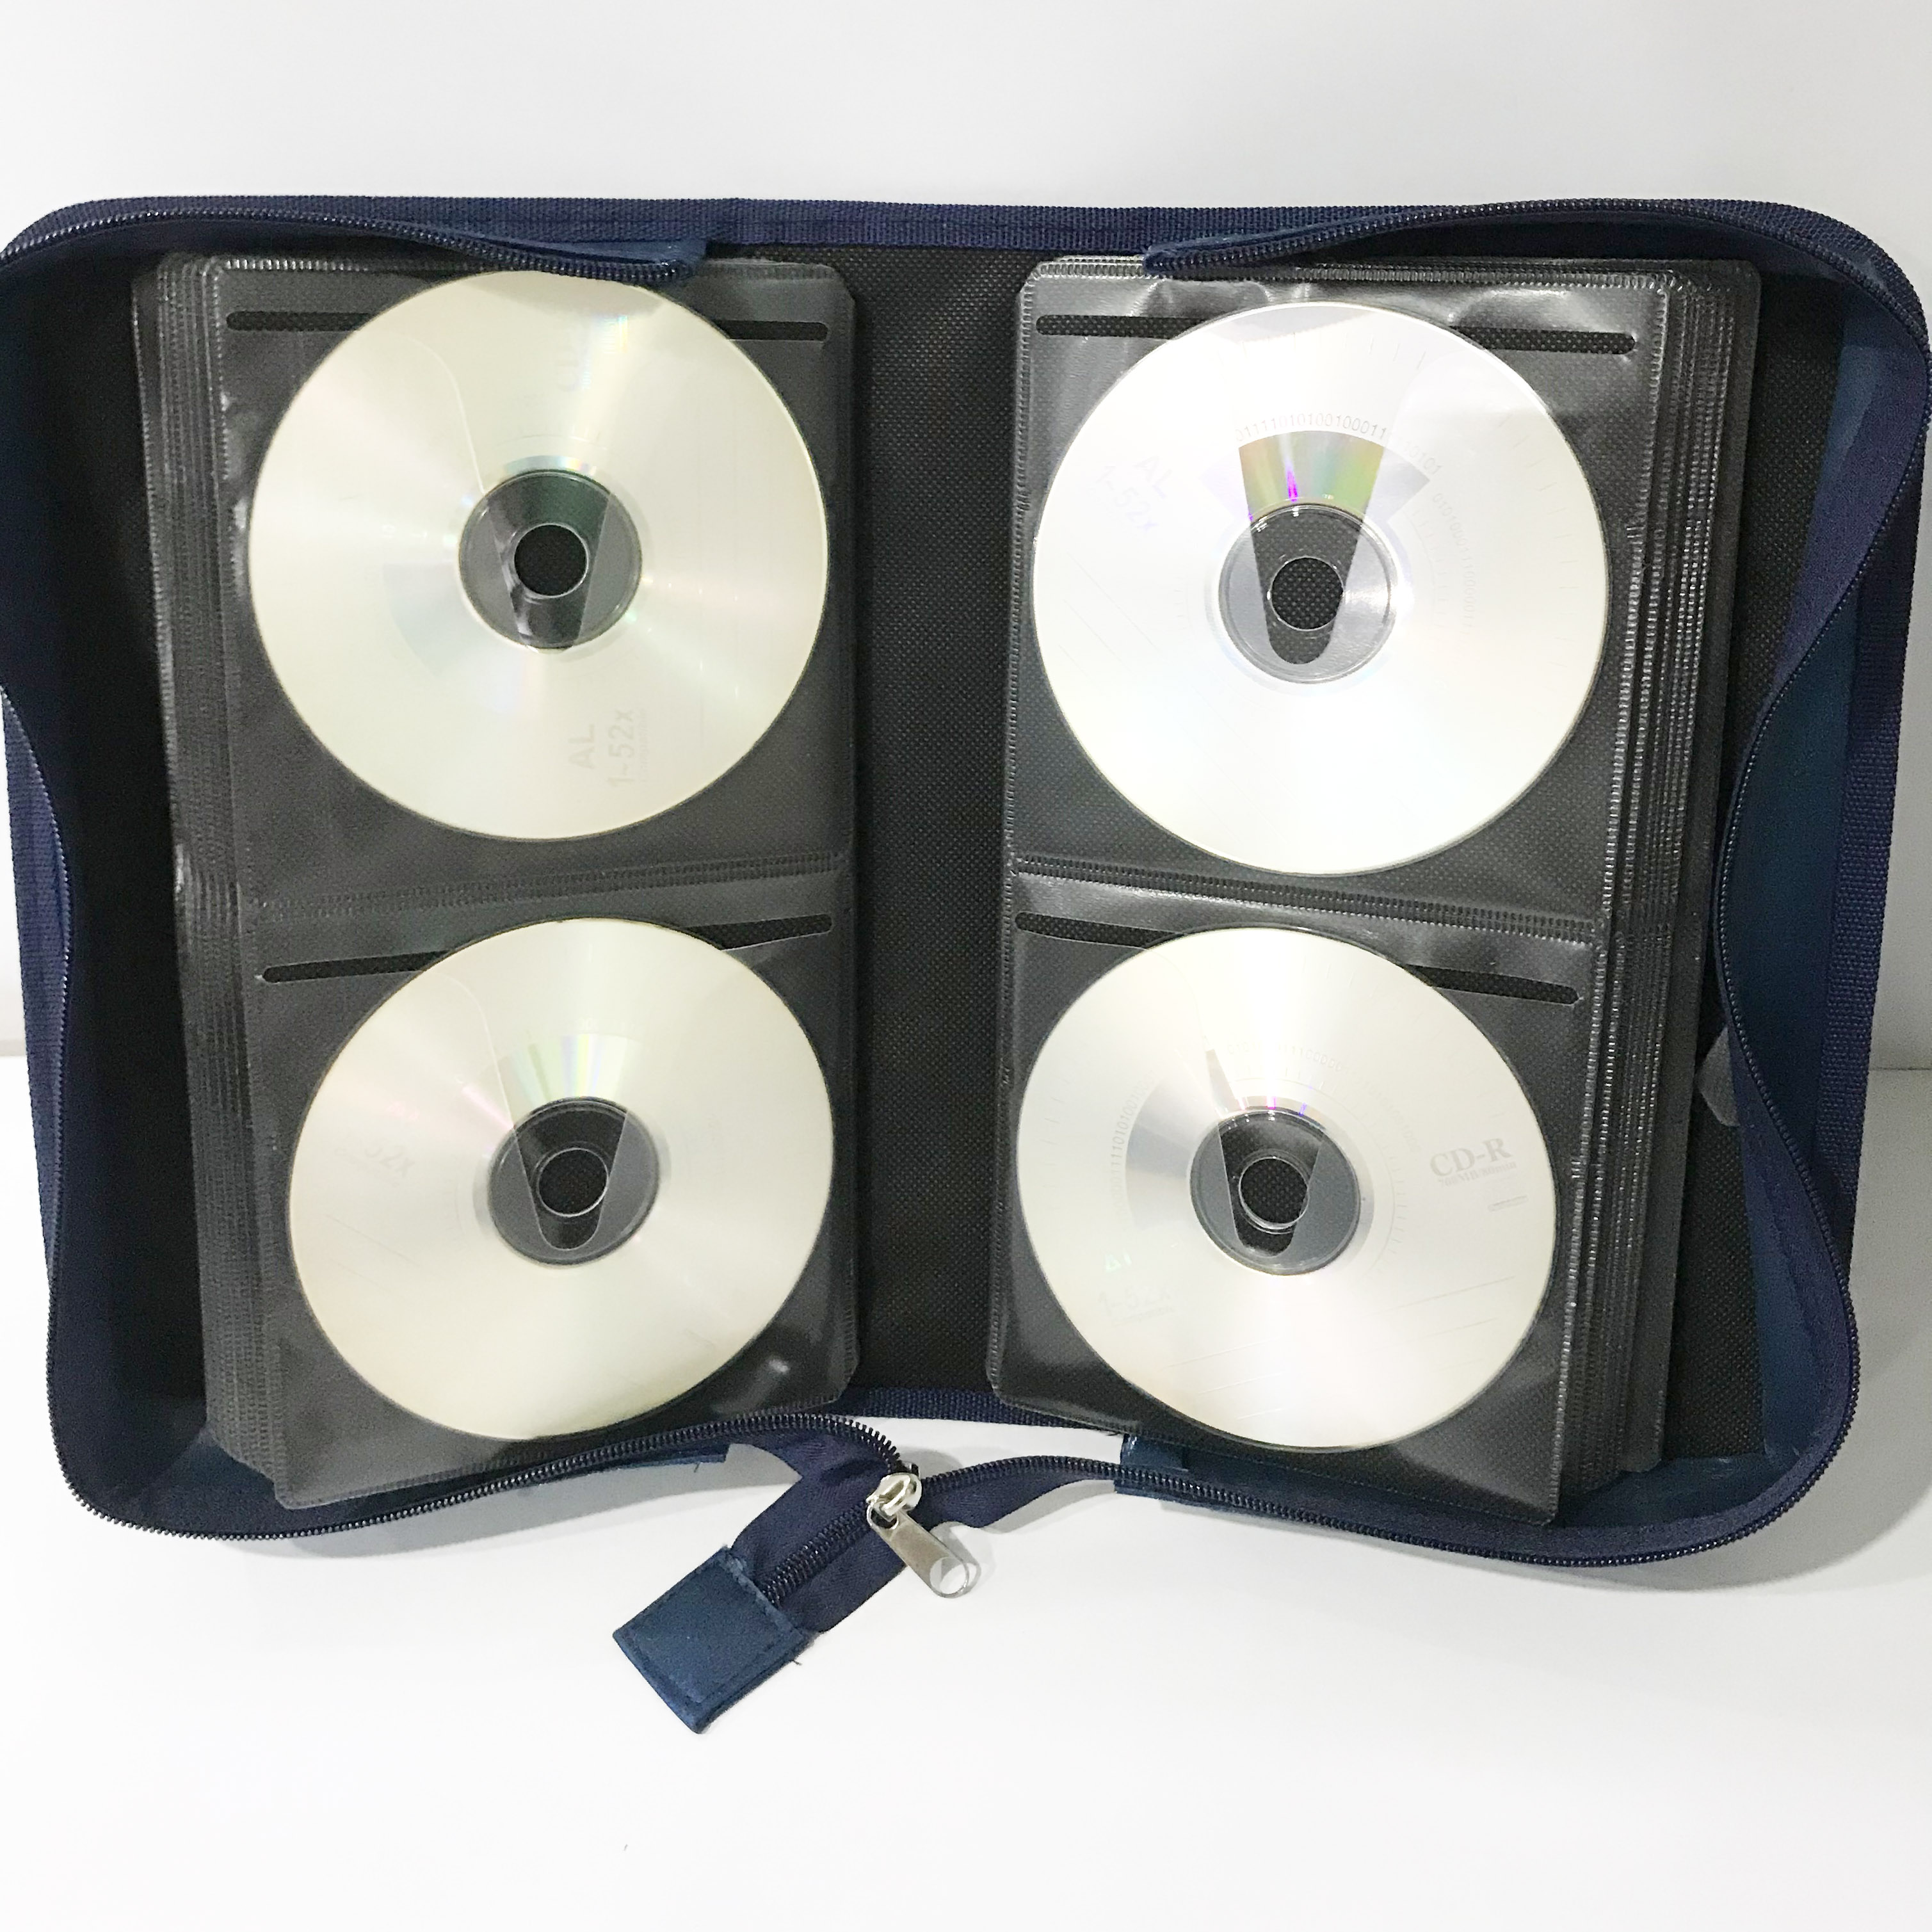 Hot selling cd wallet style for 128CDs IN Amazon